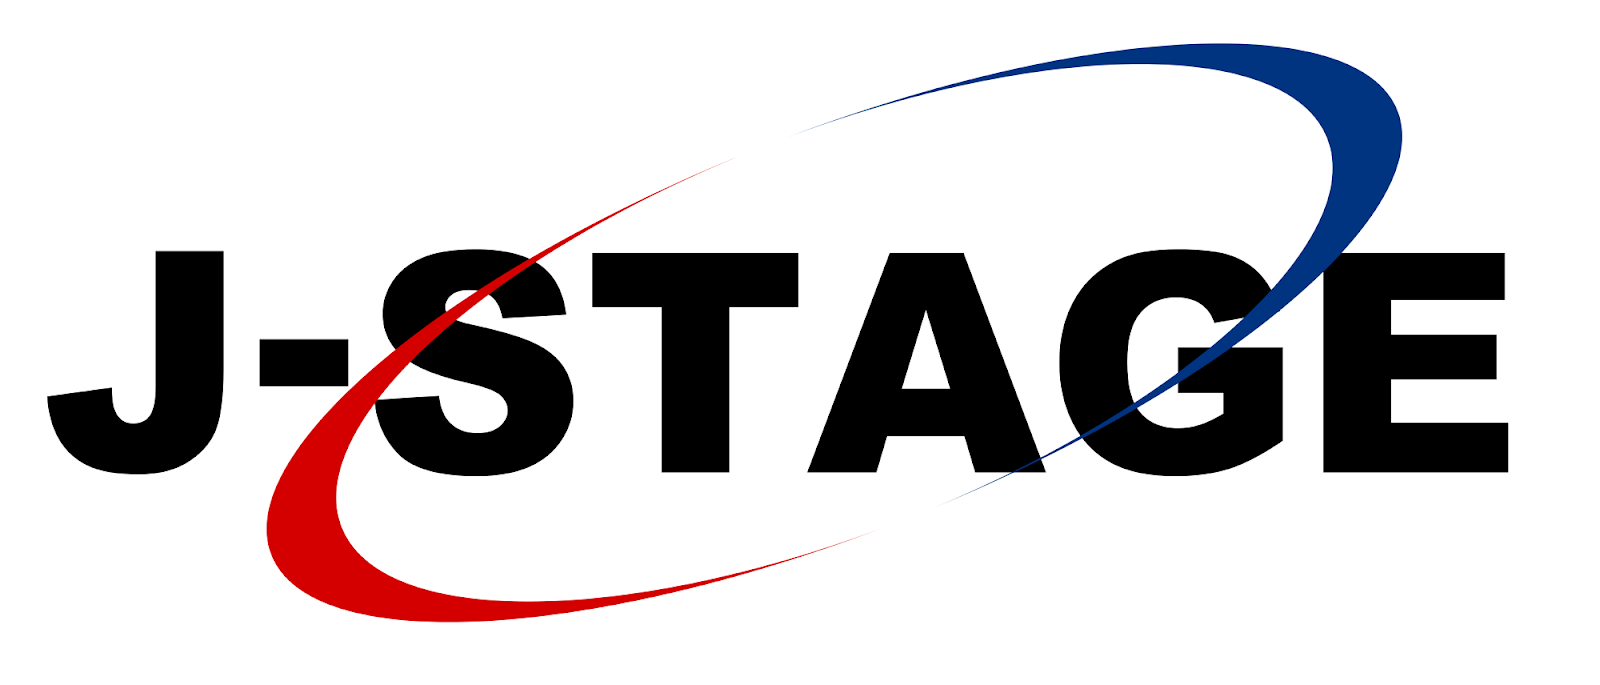 https://upload.wikimedia.org/wikipedia/commons/thumb/7/7d/J-STAGE_logo.svg/2000px-J-STAGE_logo.svg.png